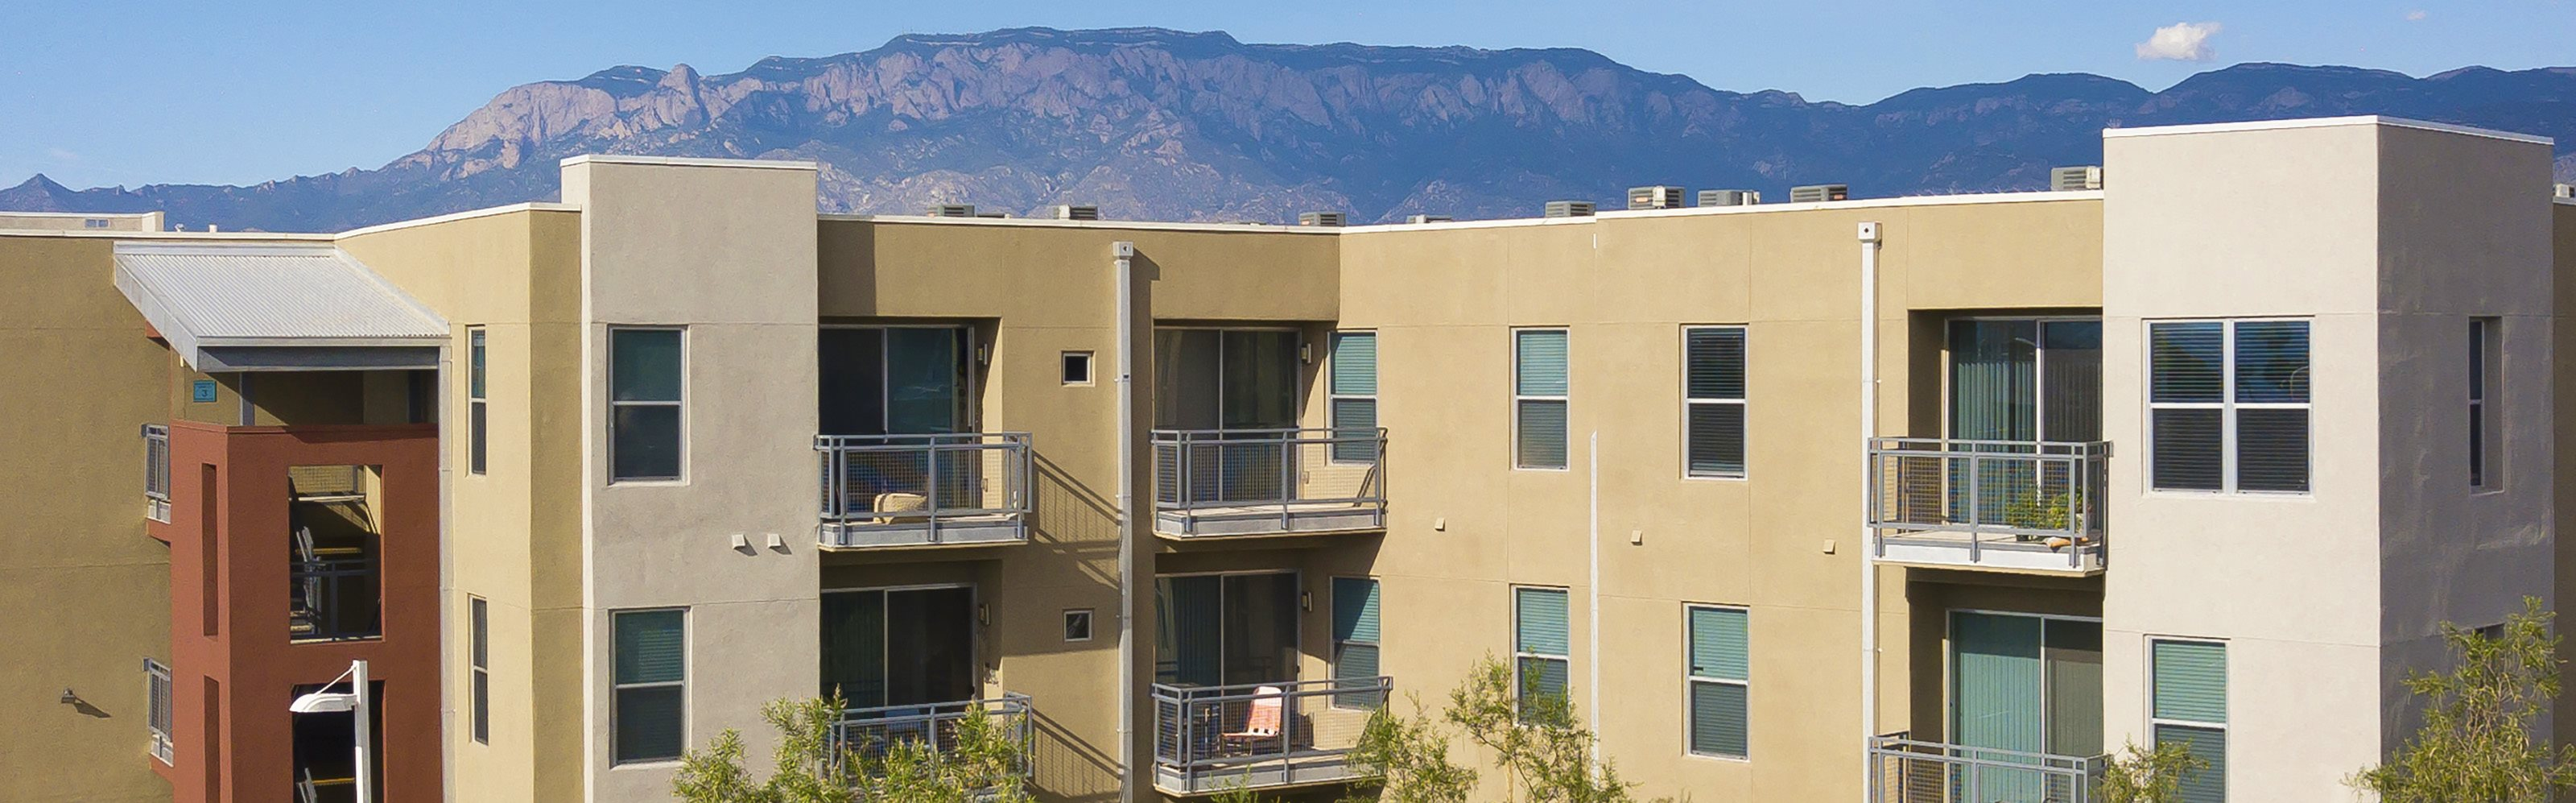 ABQ Uptown Apartments - Exterior building with mountain range background